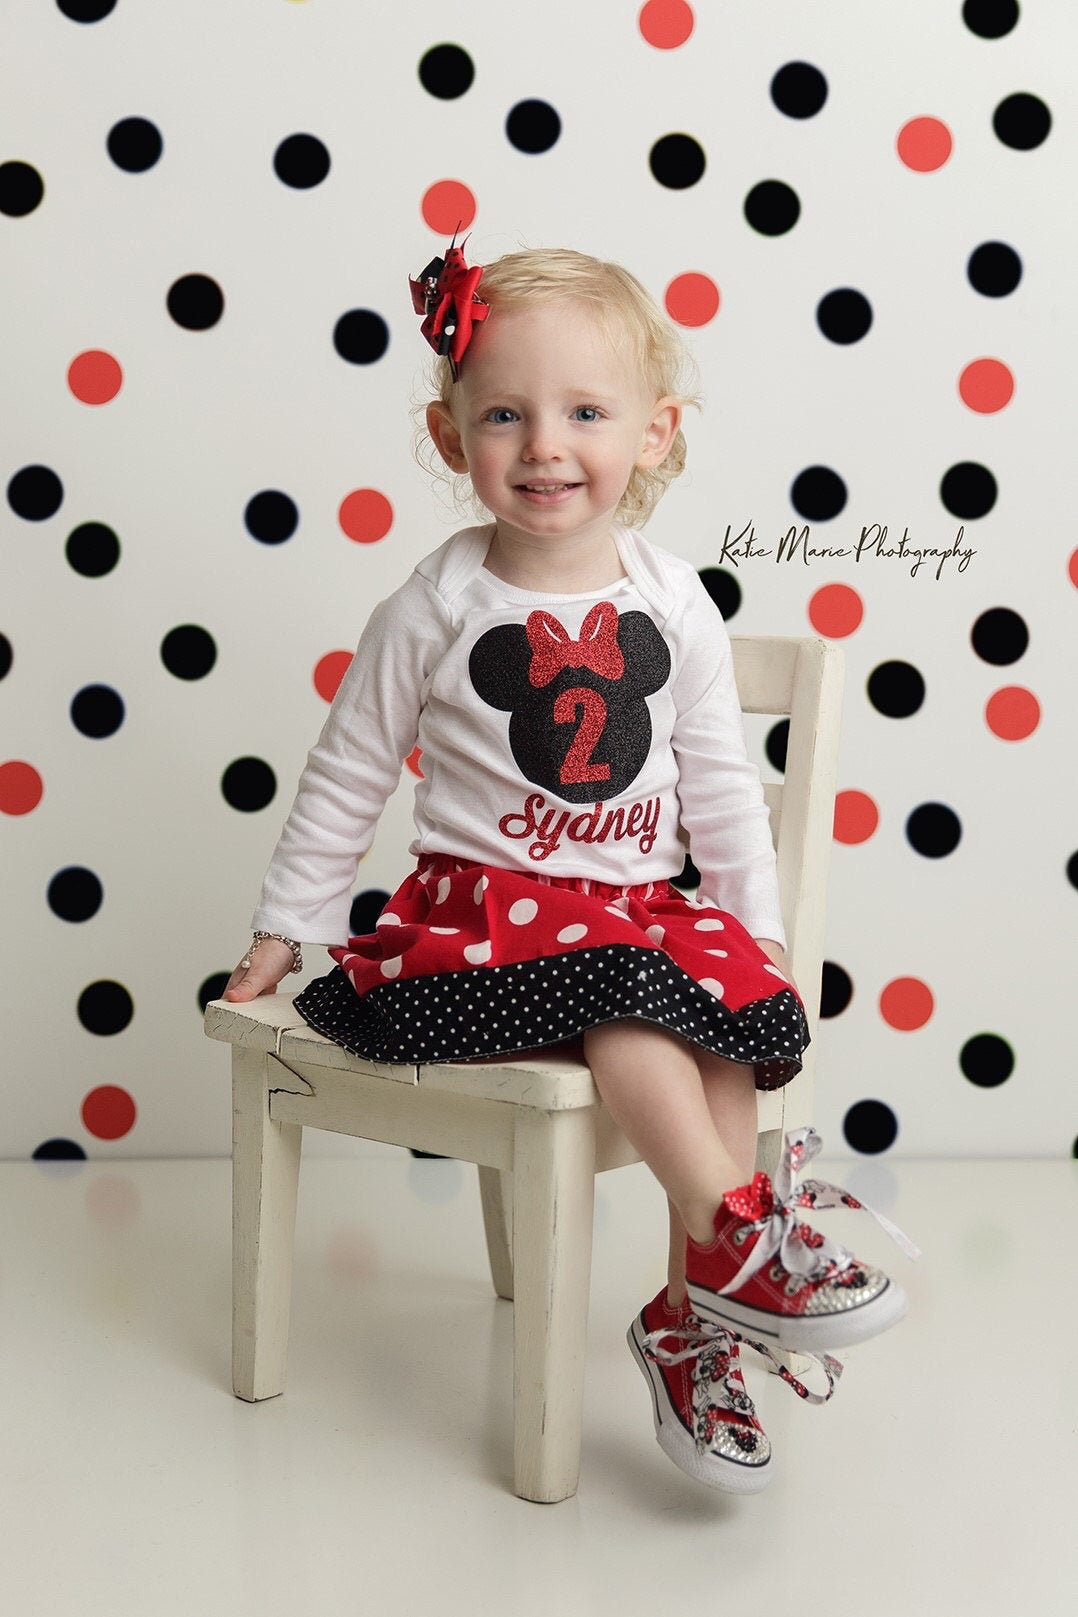 Minnie Mouse Second Birthday Outfit in red polka dots with minnie ears - two year old, 2nd bday outfit, minnie second birthday dress red